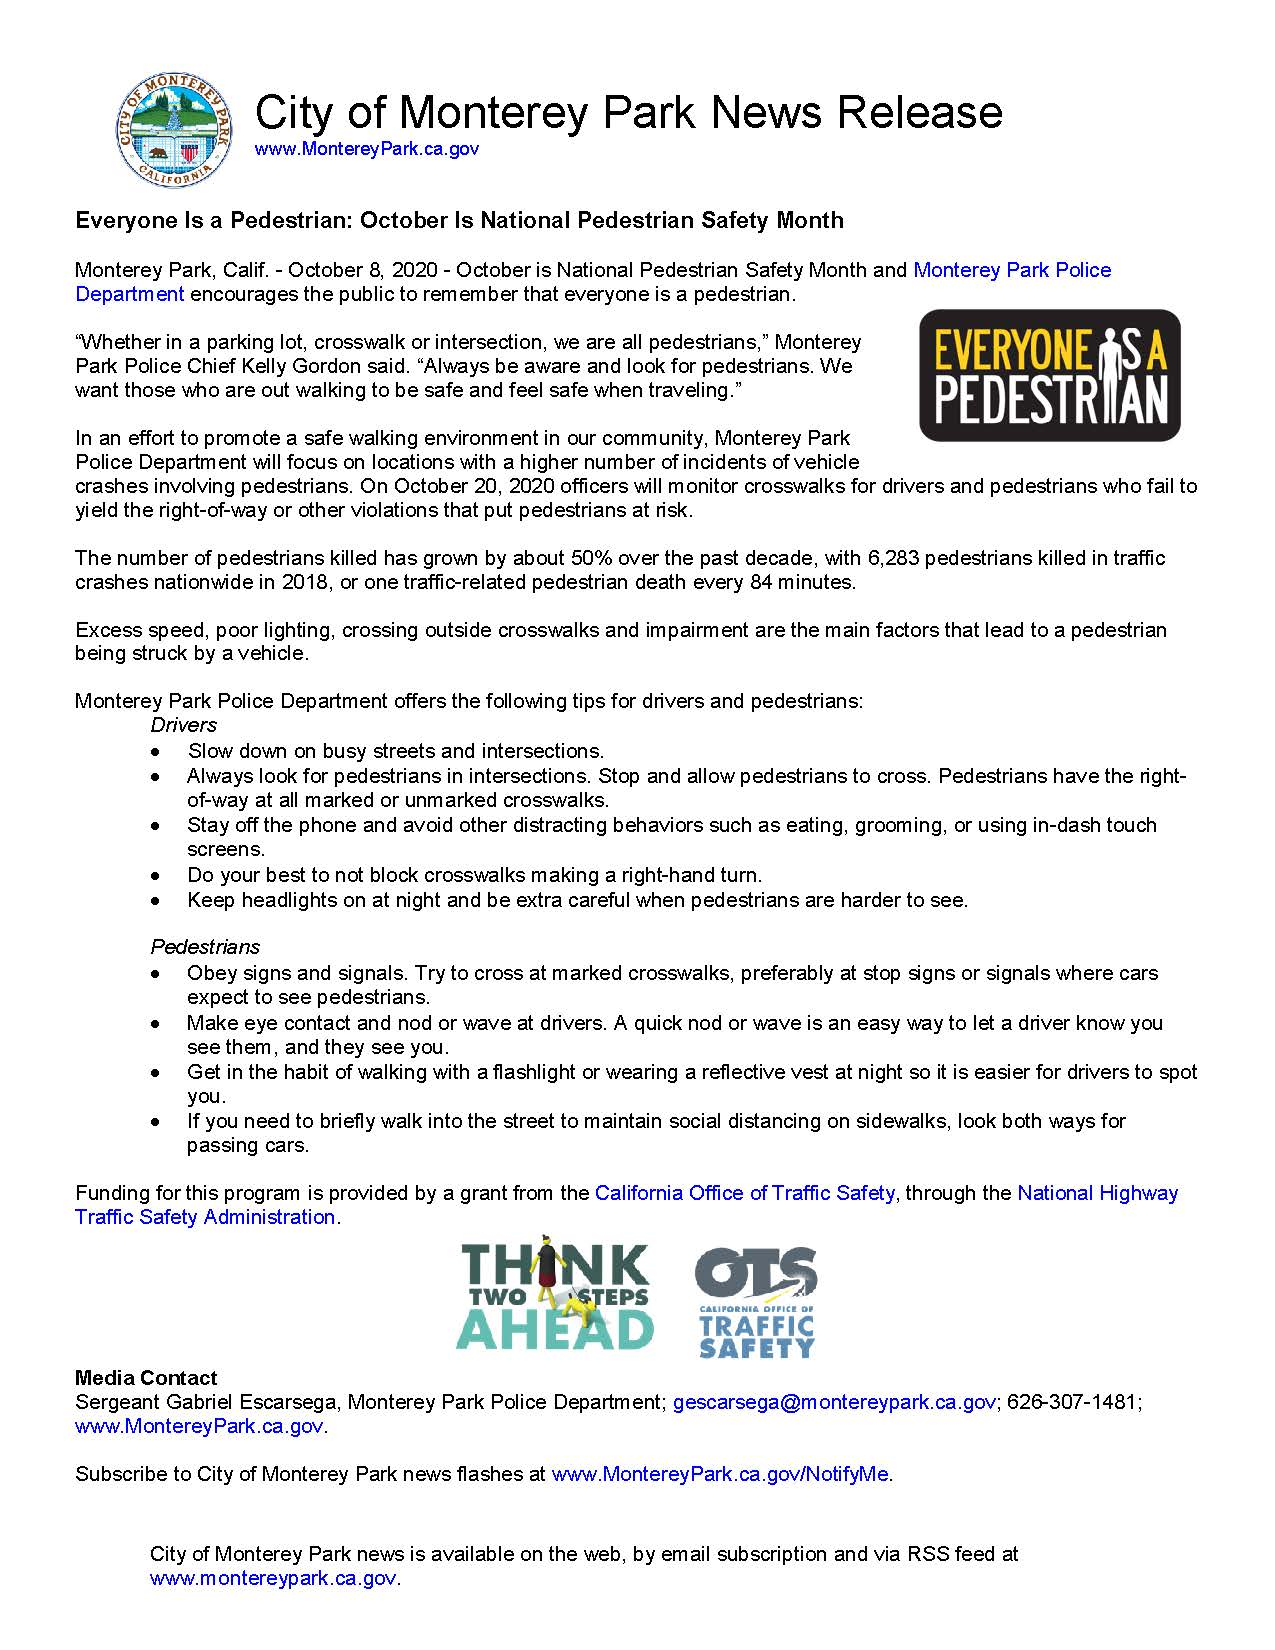 MPK News Release-Everyone is a Pedestrian October is National Pedestrian Safety Month